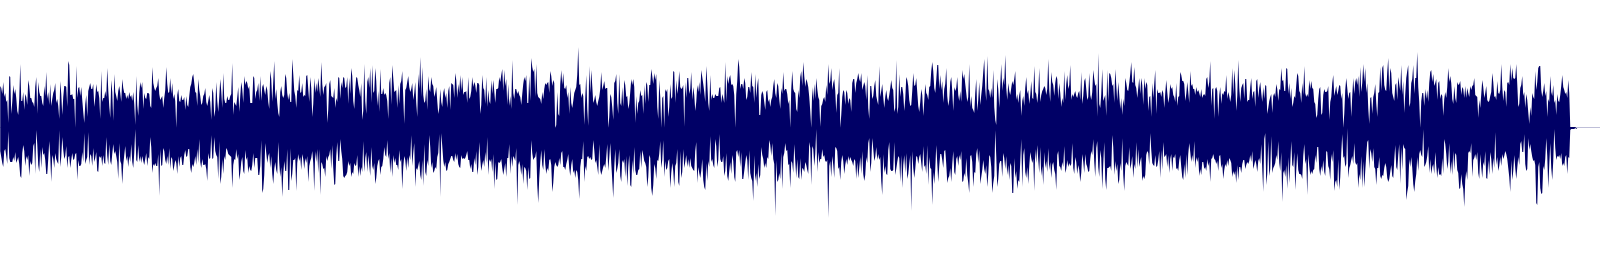 waveform of track #143870